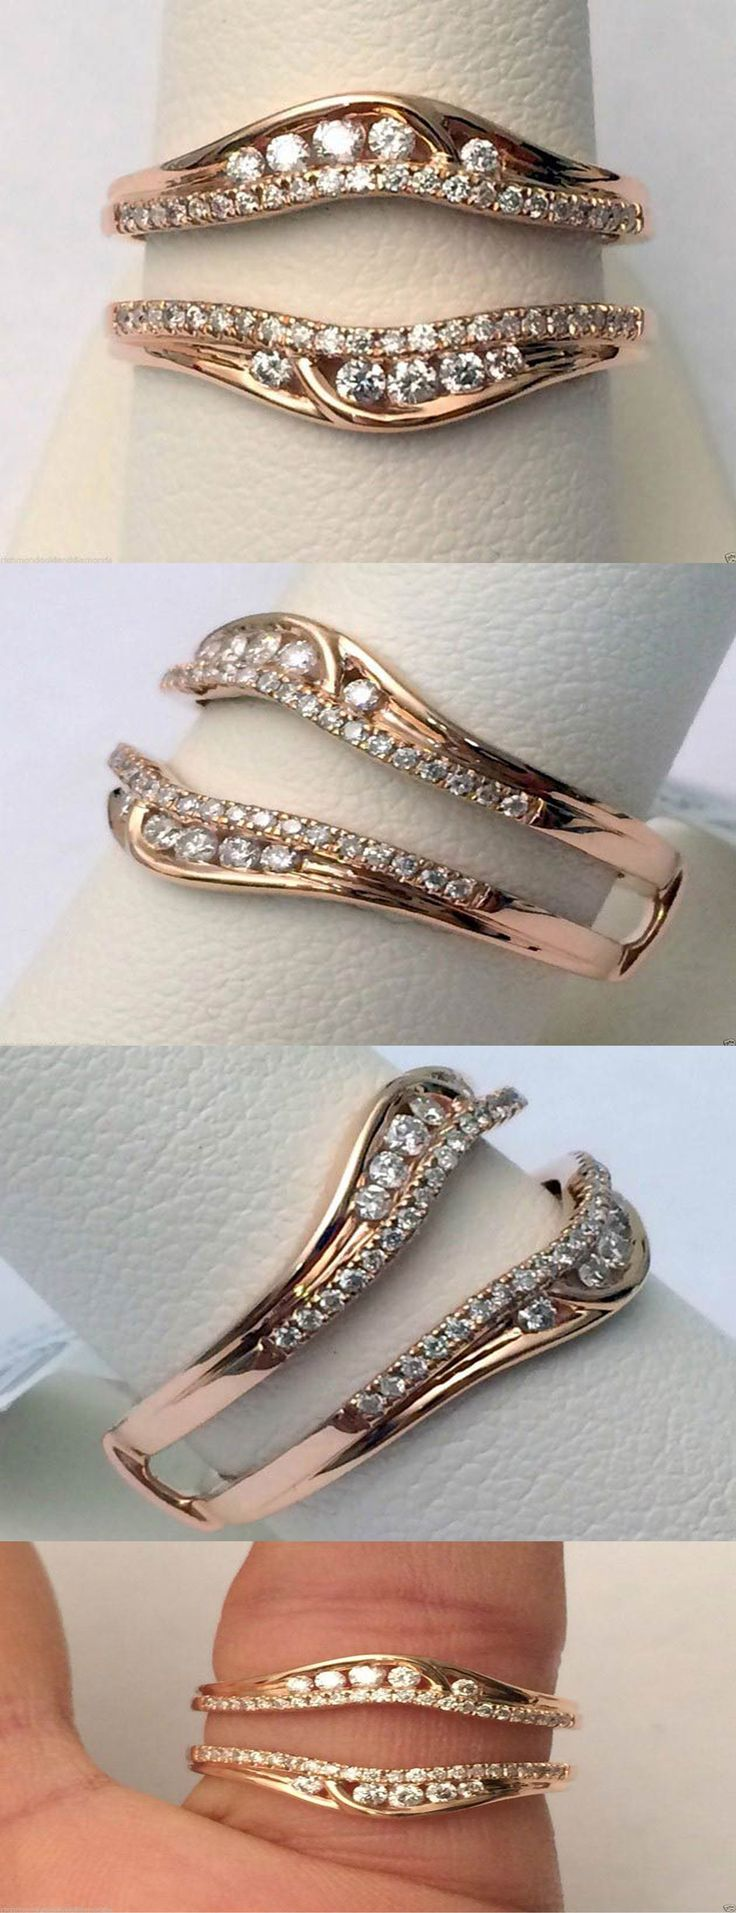 ring guard wedding ring guard 14kt Rose Gold Solitaire Enhancer Round Diamonds Ring Guard Wrap Jacket Insert